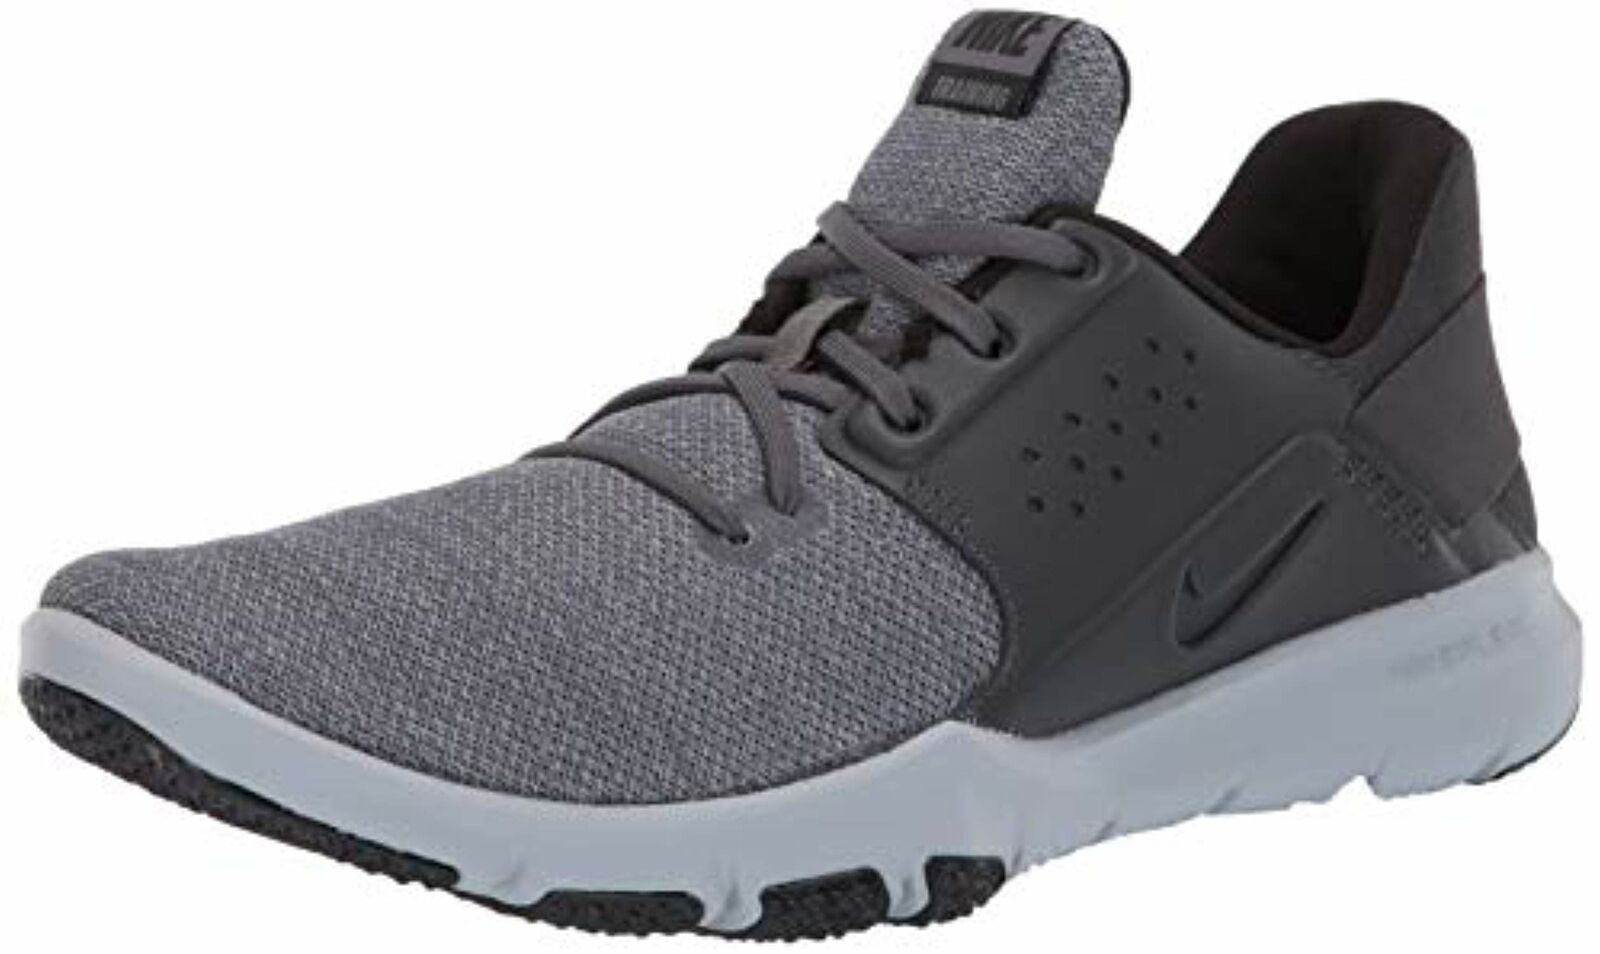 Homme Nike Flex Control TR3 Large Turnchaussures, Anthracite-noir, 10 US